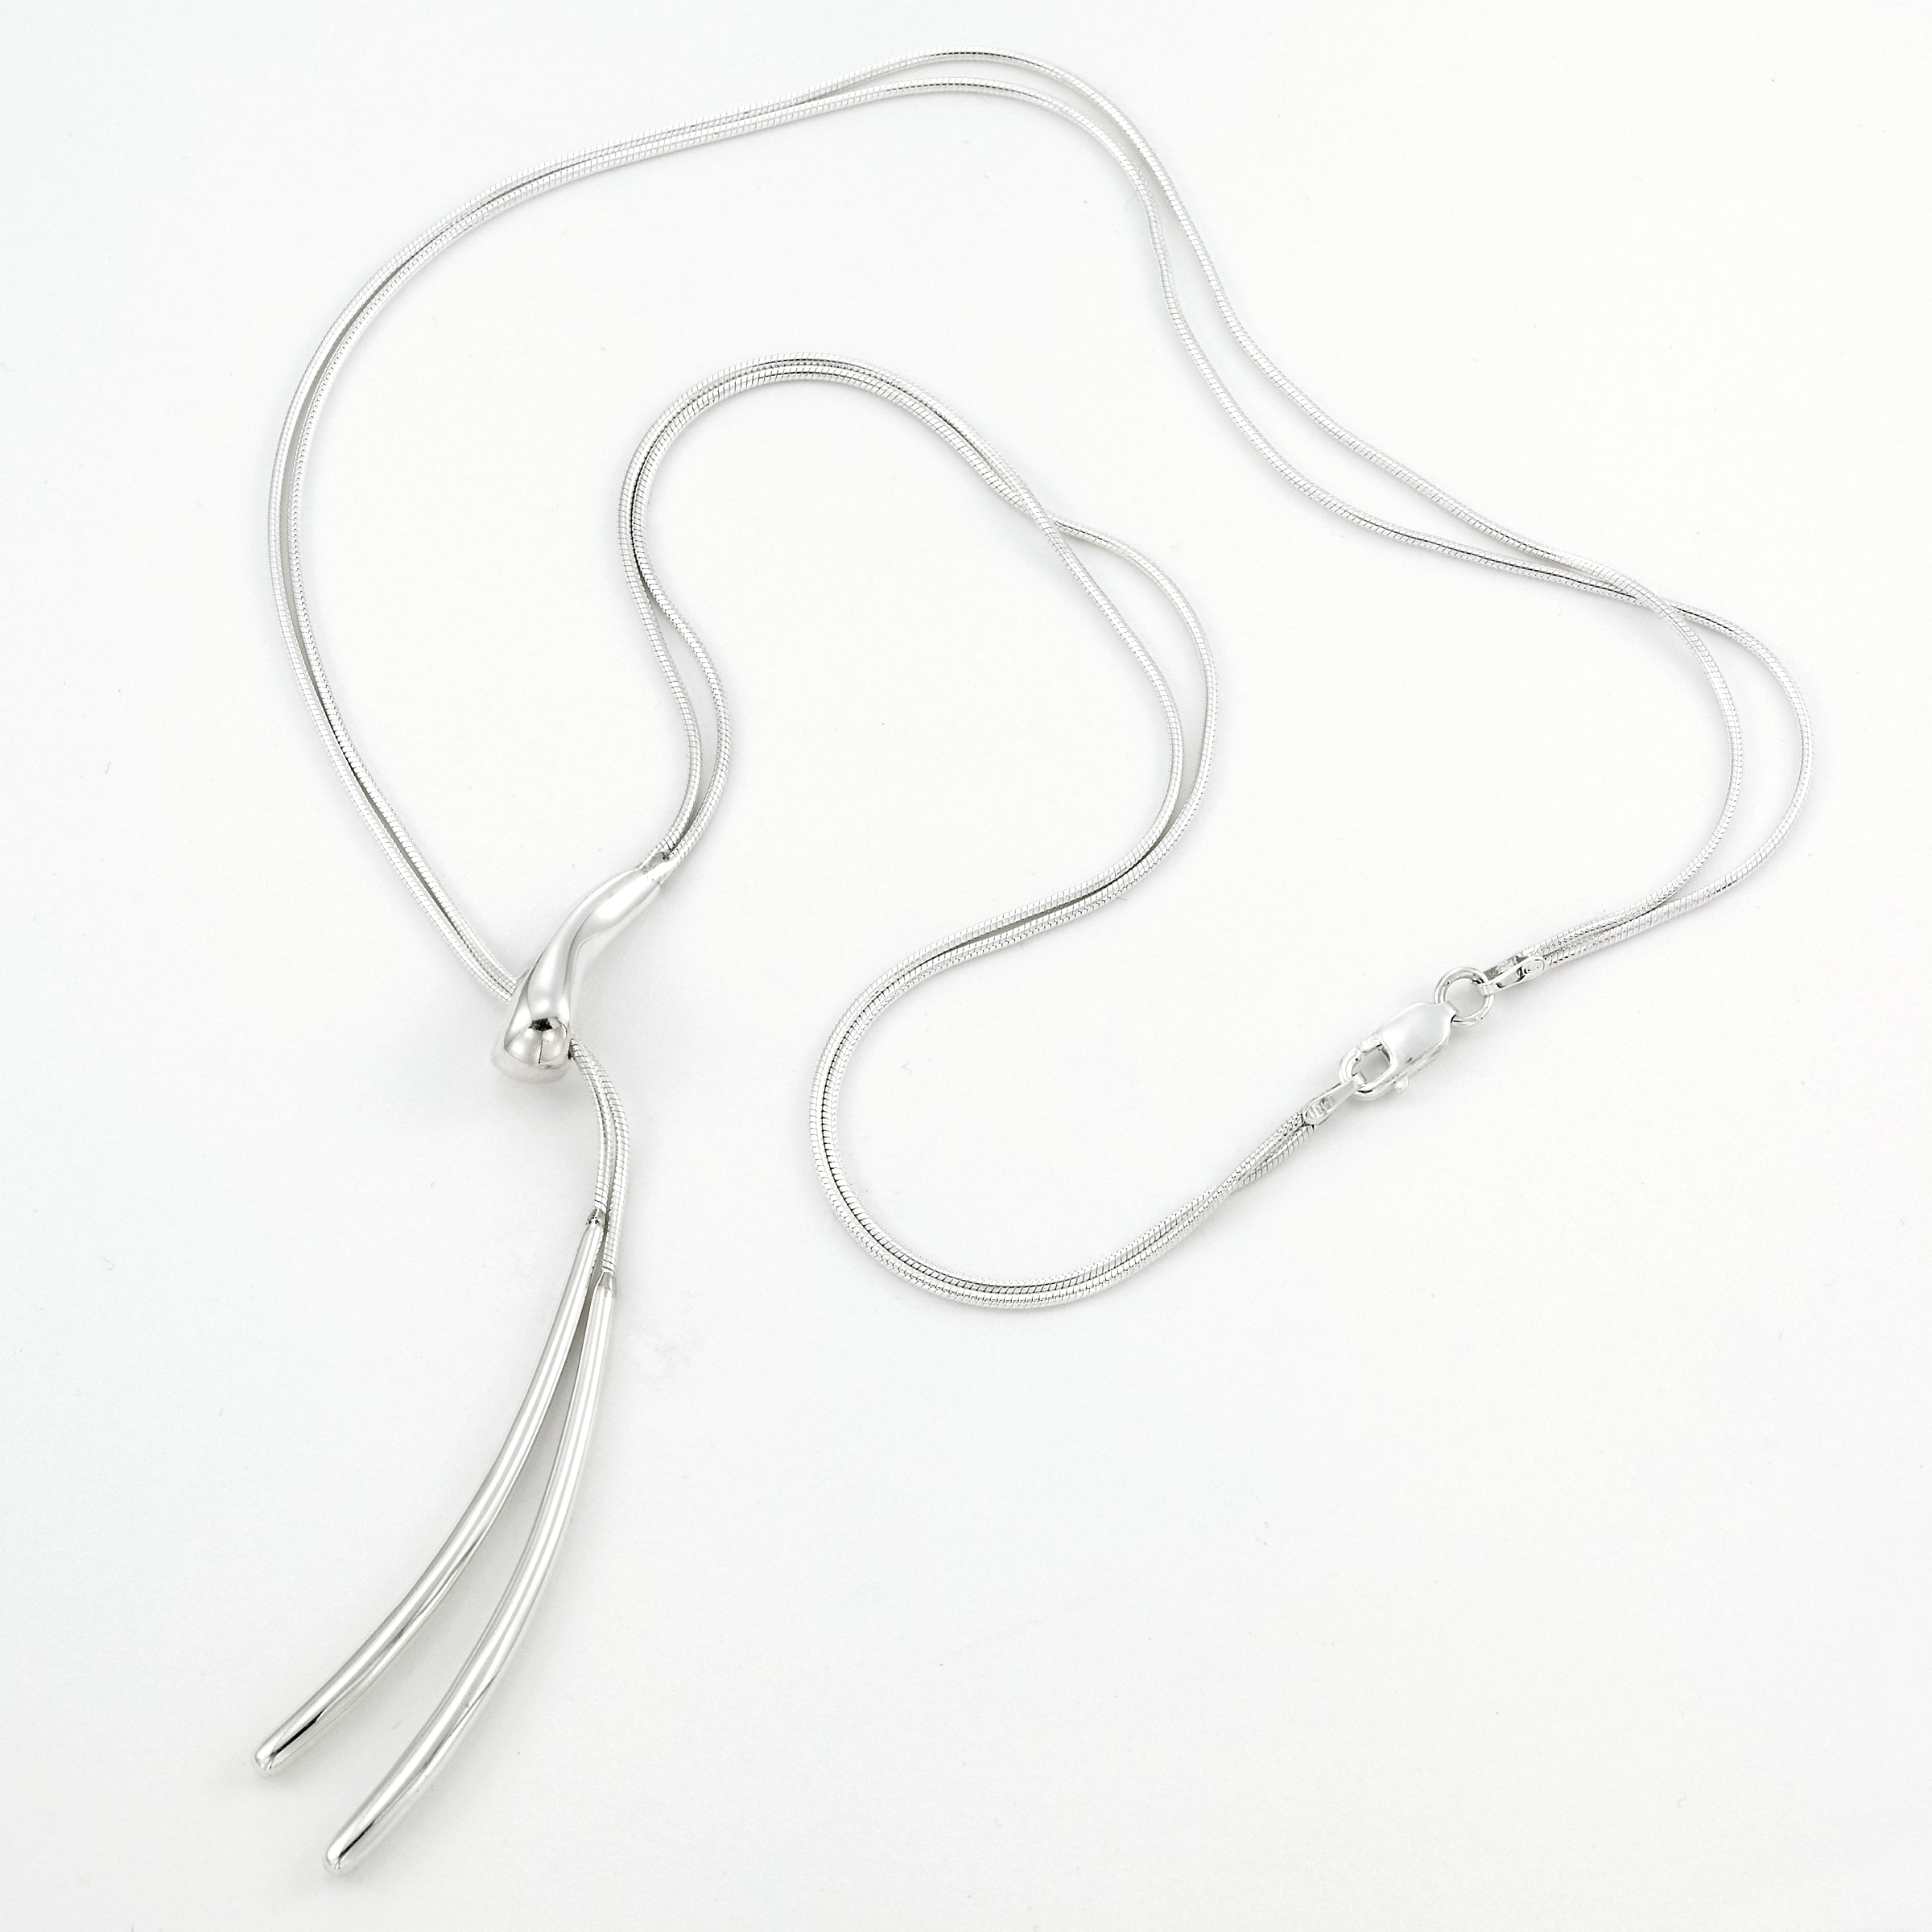 Double Snake Chain Lariat, Sterling Silver, by Sharelli